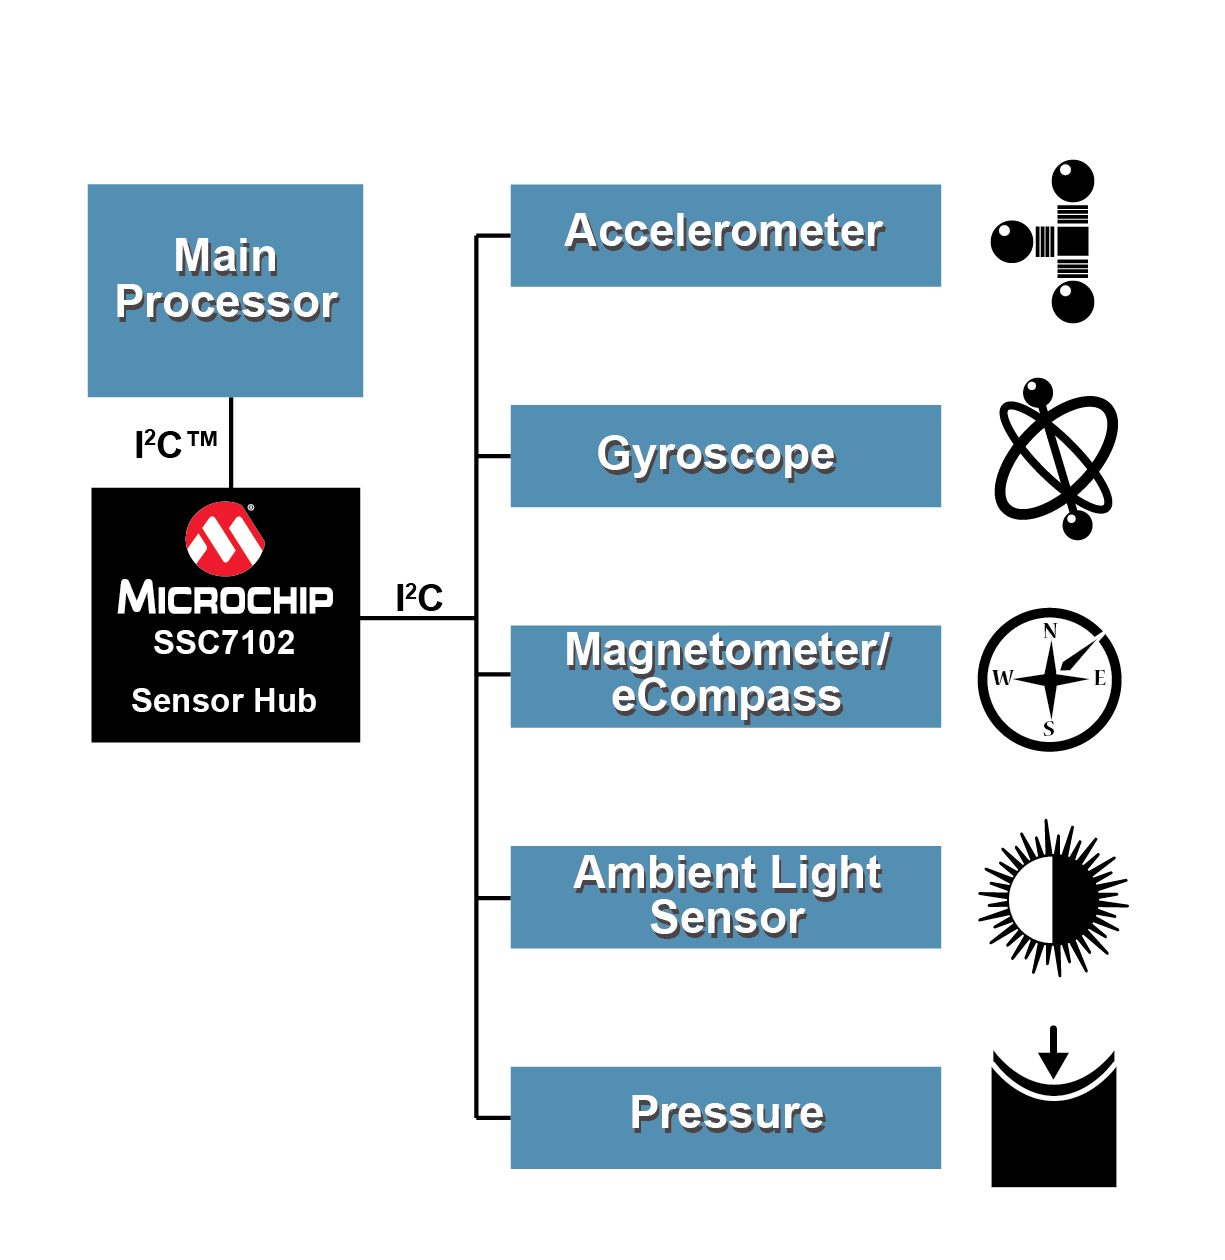 Microchip's low-power sensor hub makes sensor fusion easy